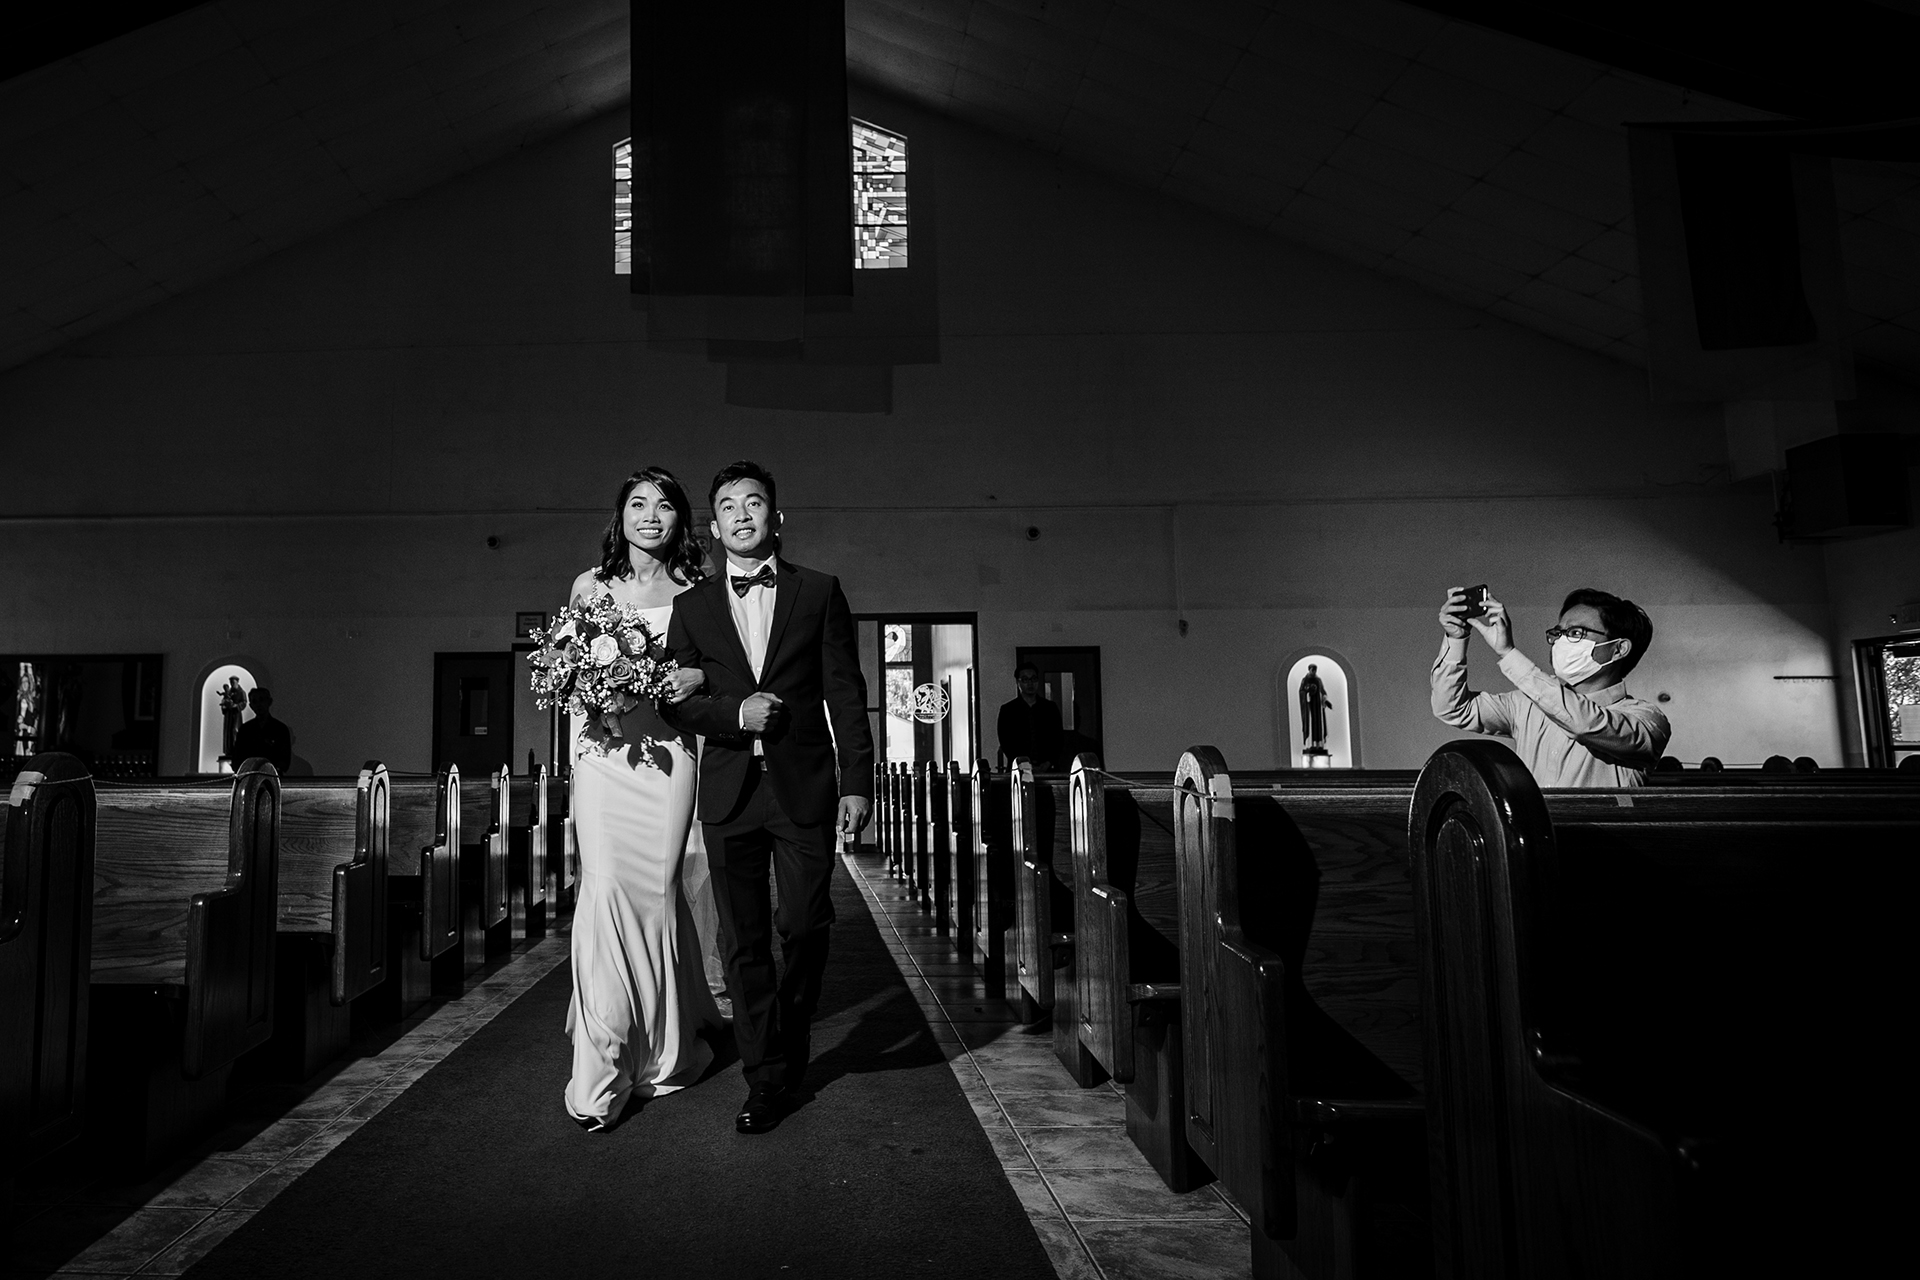 San Jose church wedding ceremony photography | The bride and groom walk down the aisle together